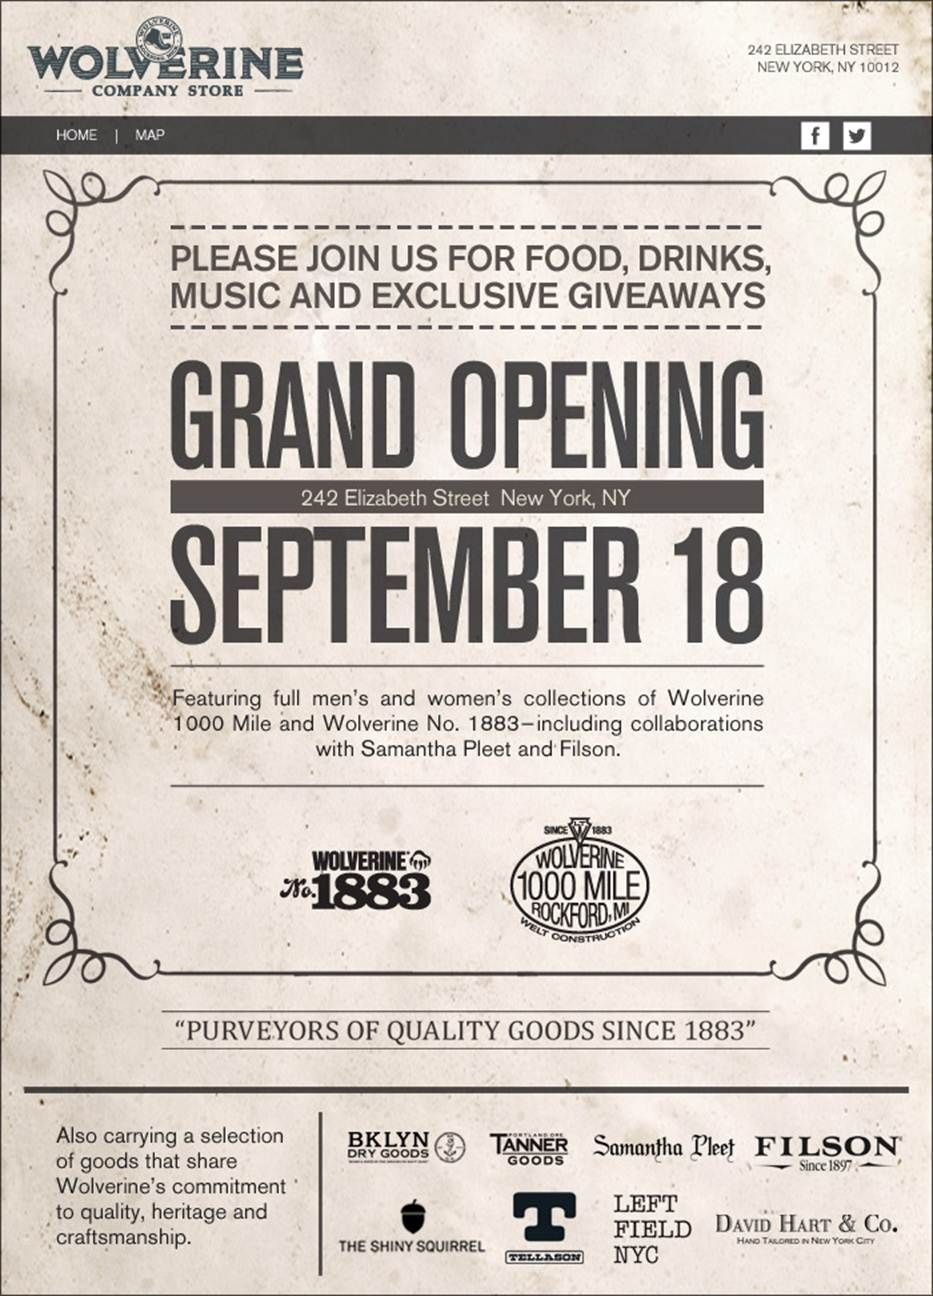 Wolverine  Mile Shop Grand Opening Flyer  Branding